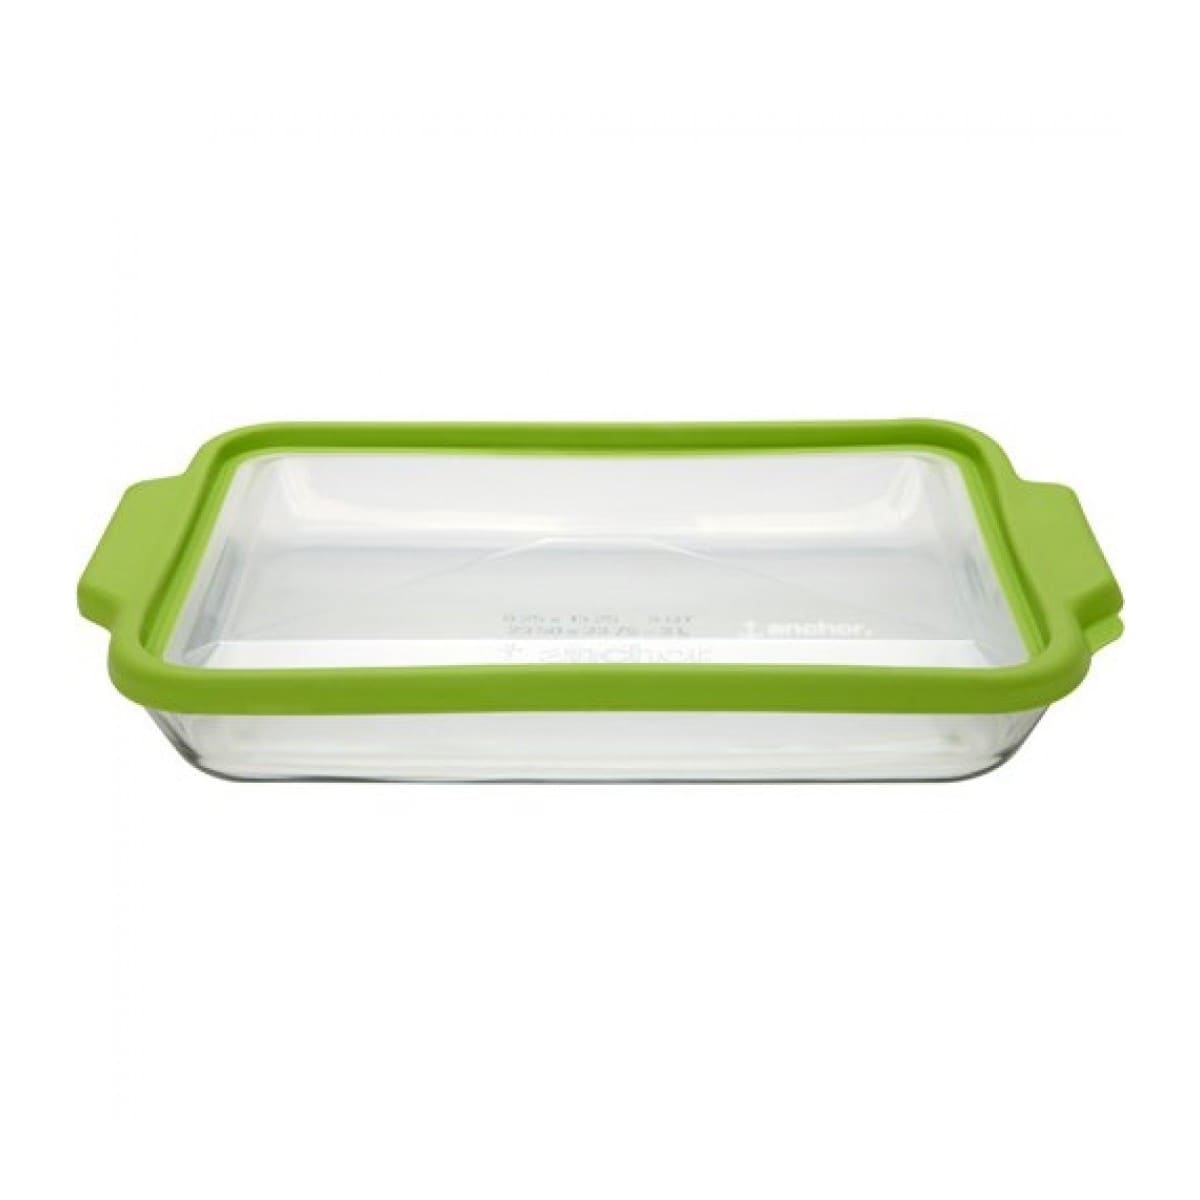 10 Piece Glass Kitchen Casserole Set Rectangle Clear Baking Dish with Lids